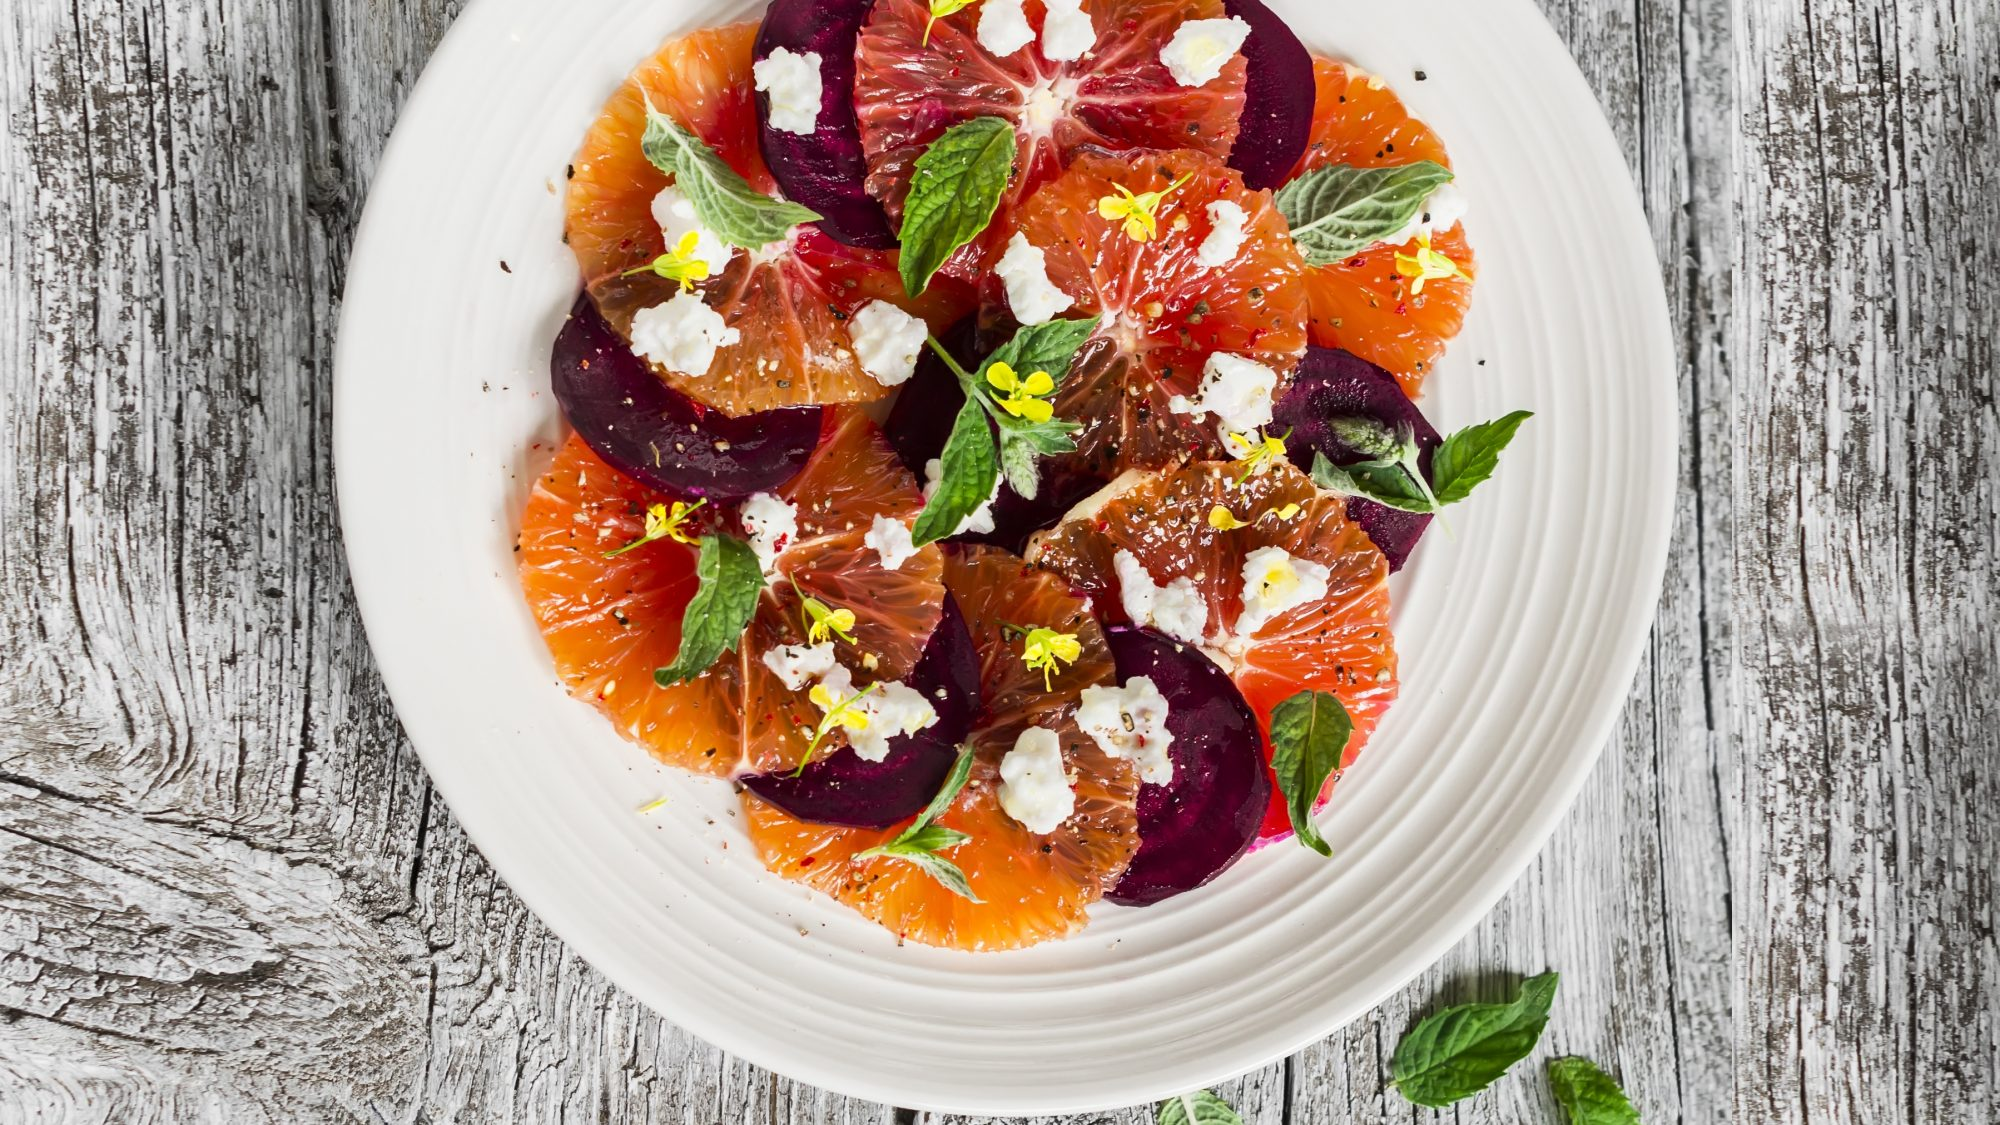 immune-boosting-meal-guide: citrus salad